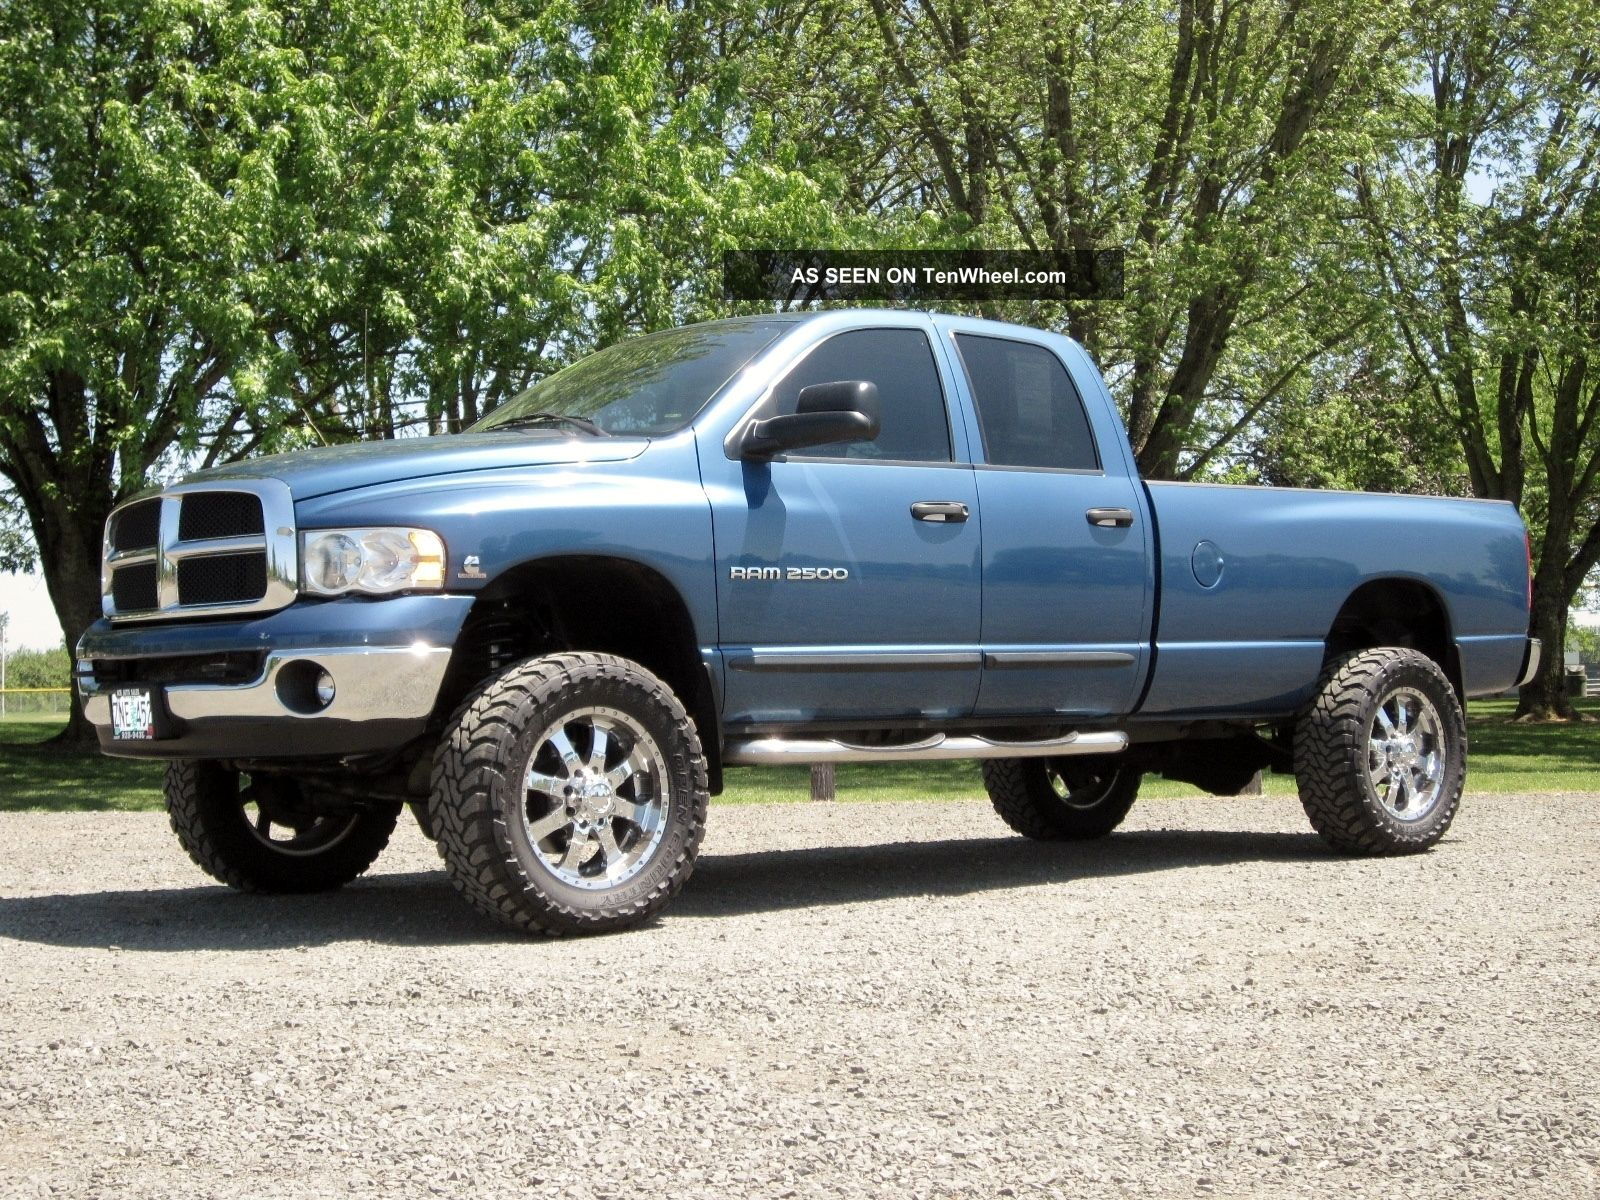 2003 Dodge Ram 2500 Quad Cab Slt Turbo Diesel Tons Of Aftermarket